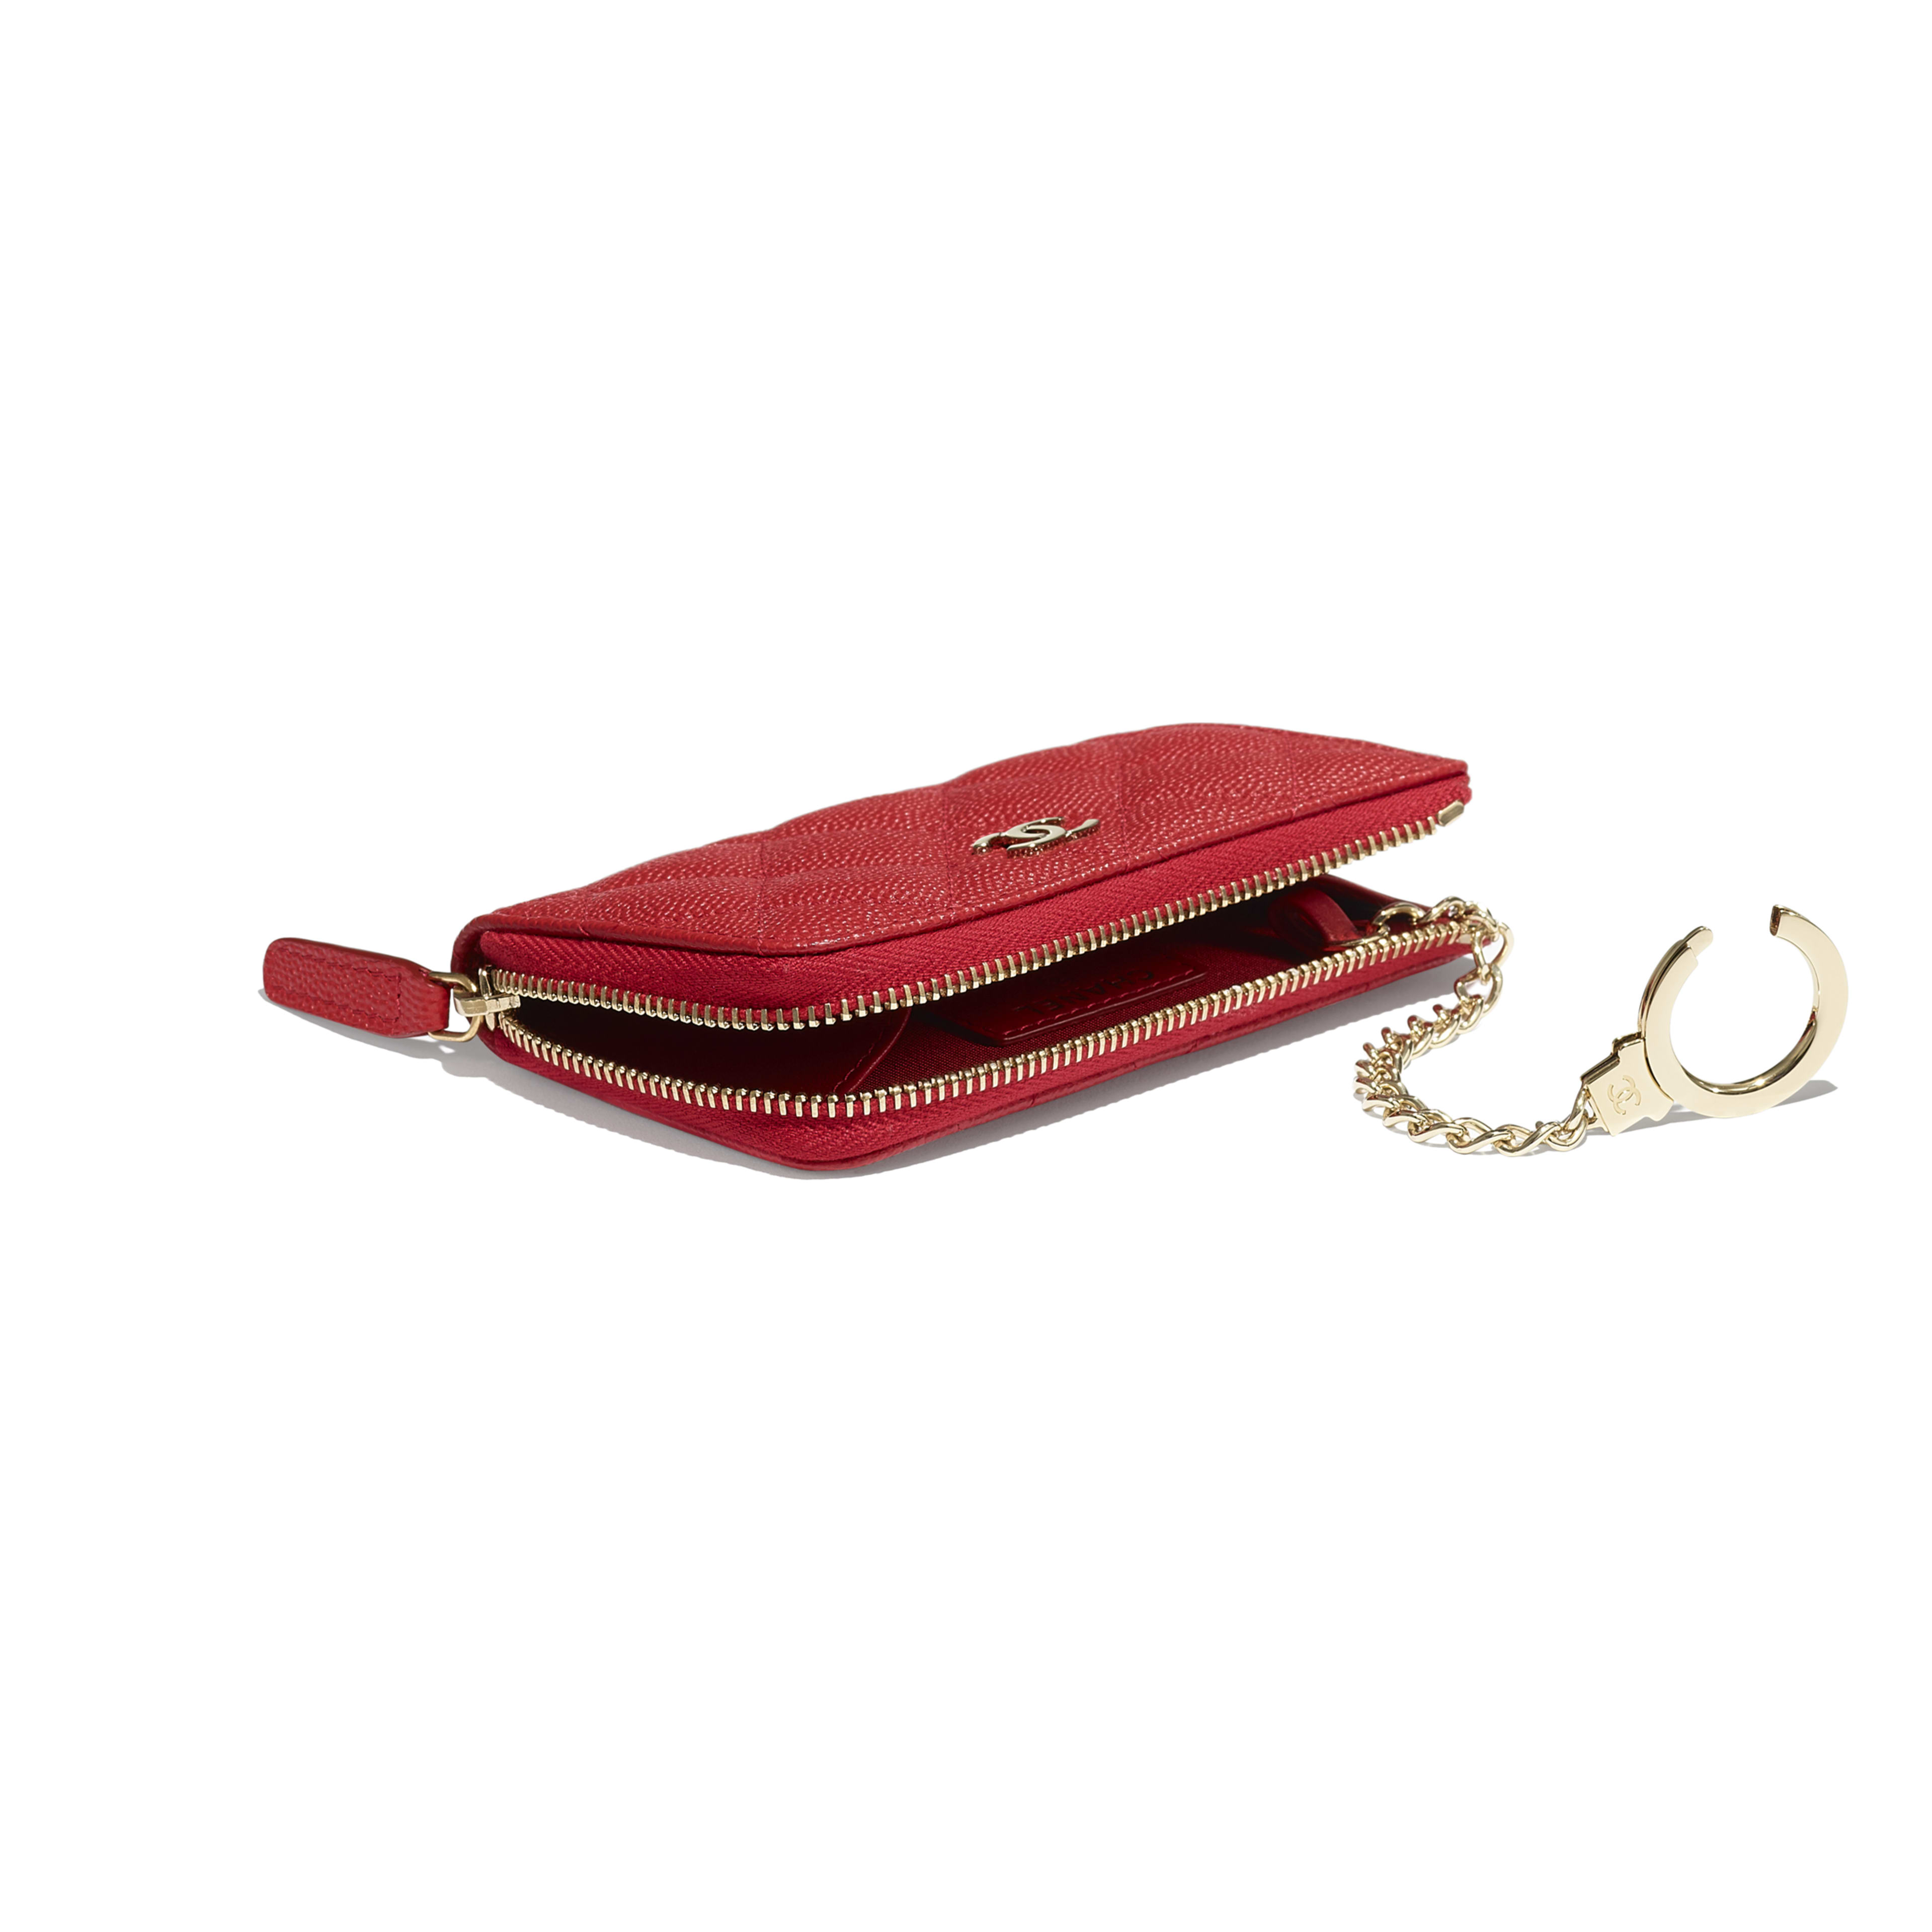 Classic Zipped Key Holder - Red - Grained Calfskin & Gold-Tone Metal - Extra view - see full sized version